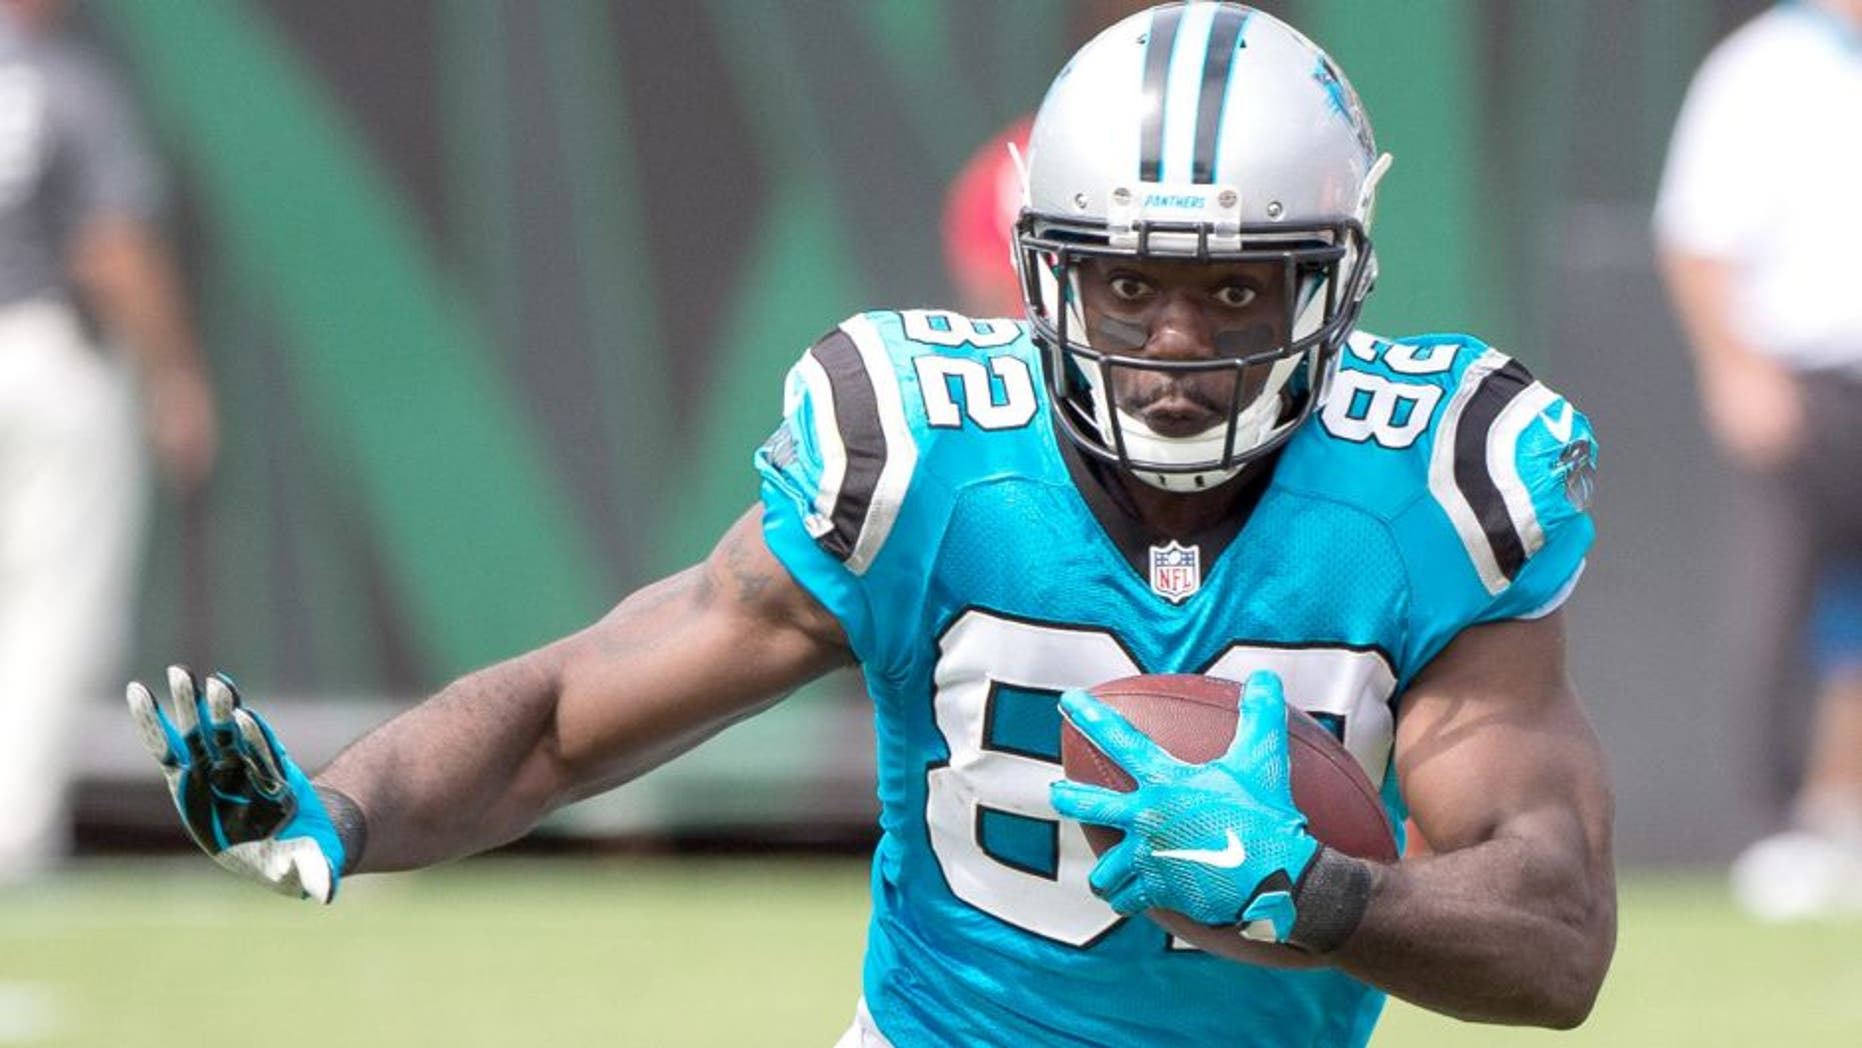 Sep 13, 2015; Jacksonville, FL, USA; Carolina Panthers wide receiver Jerricho Cotchery (82) runs with the ball during the game against the Jacksonville Jaguars at EverBank Field. The Panthers defeat the Jaguars 20-9. Mandatory Credit: Jerome Miron-USA TODAY Sports